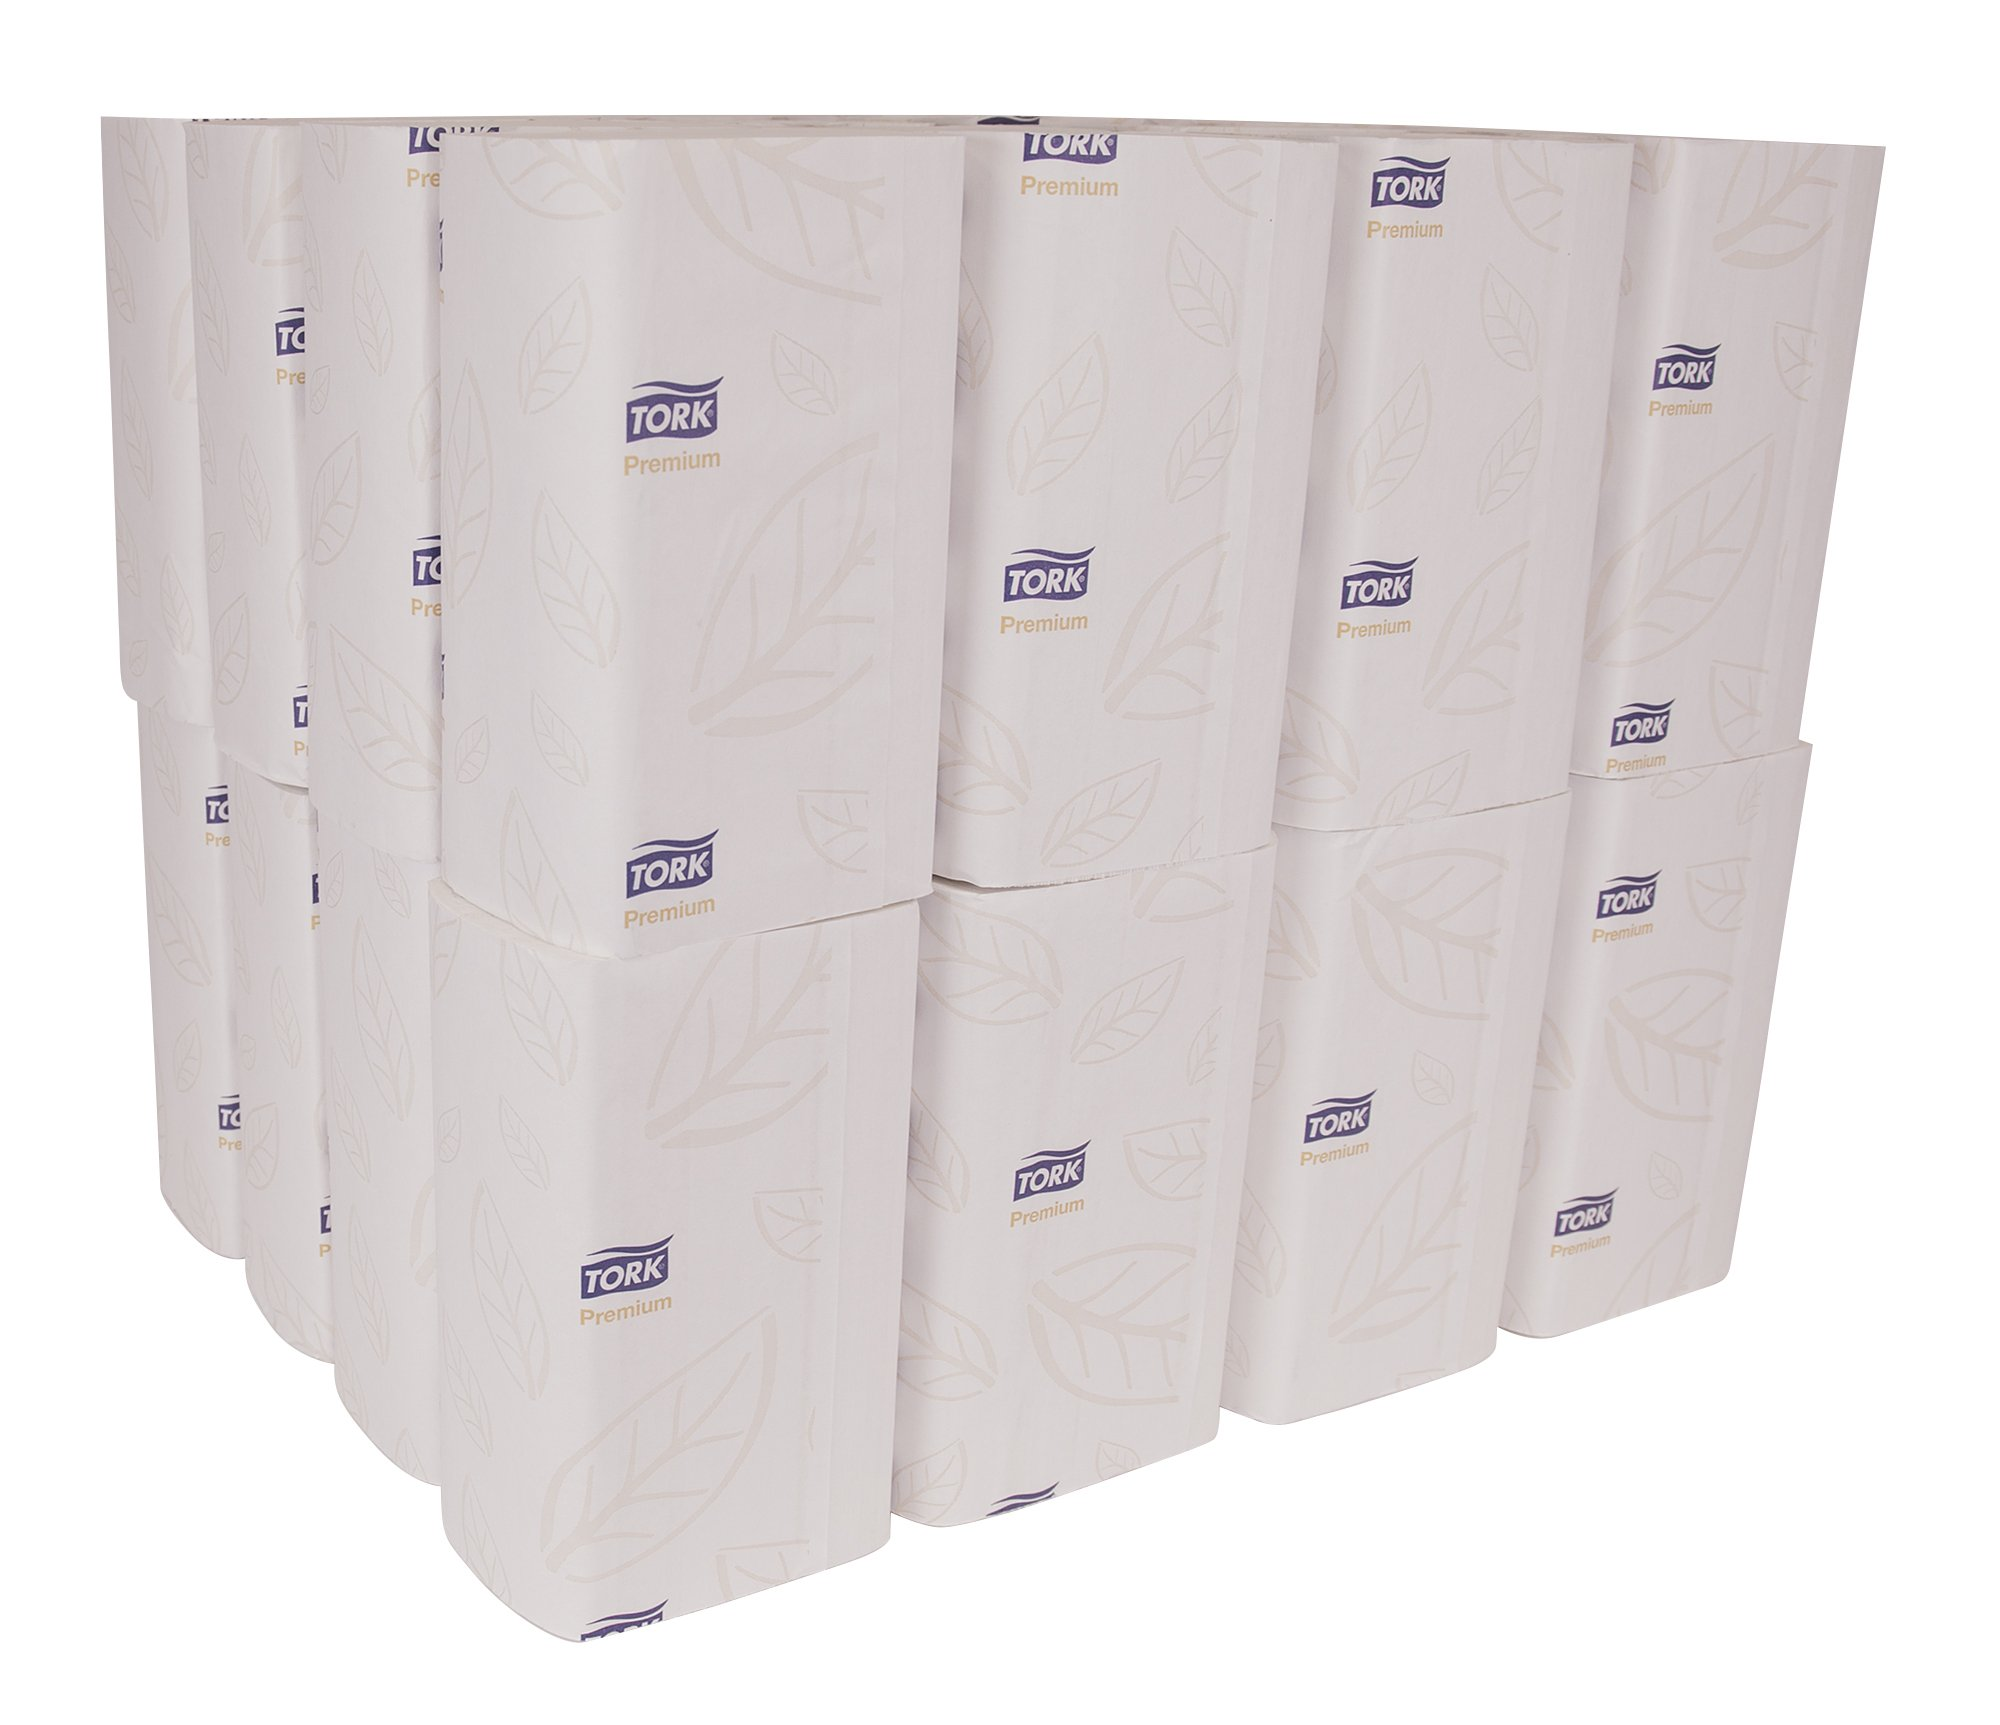 Tork Premium MB574 Soft Xpress Multifold Paper Hand Towel, 4-Panel, 2-Ply, 8.4'' Width x 14.5'' Length, White (Case of 32 Packs, 94 per Pack, 3,008 Towels) by Tork (Image #2)